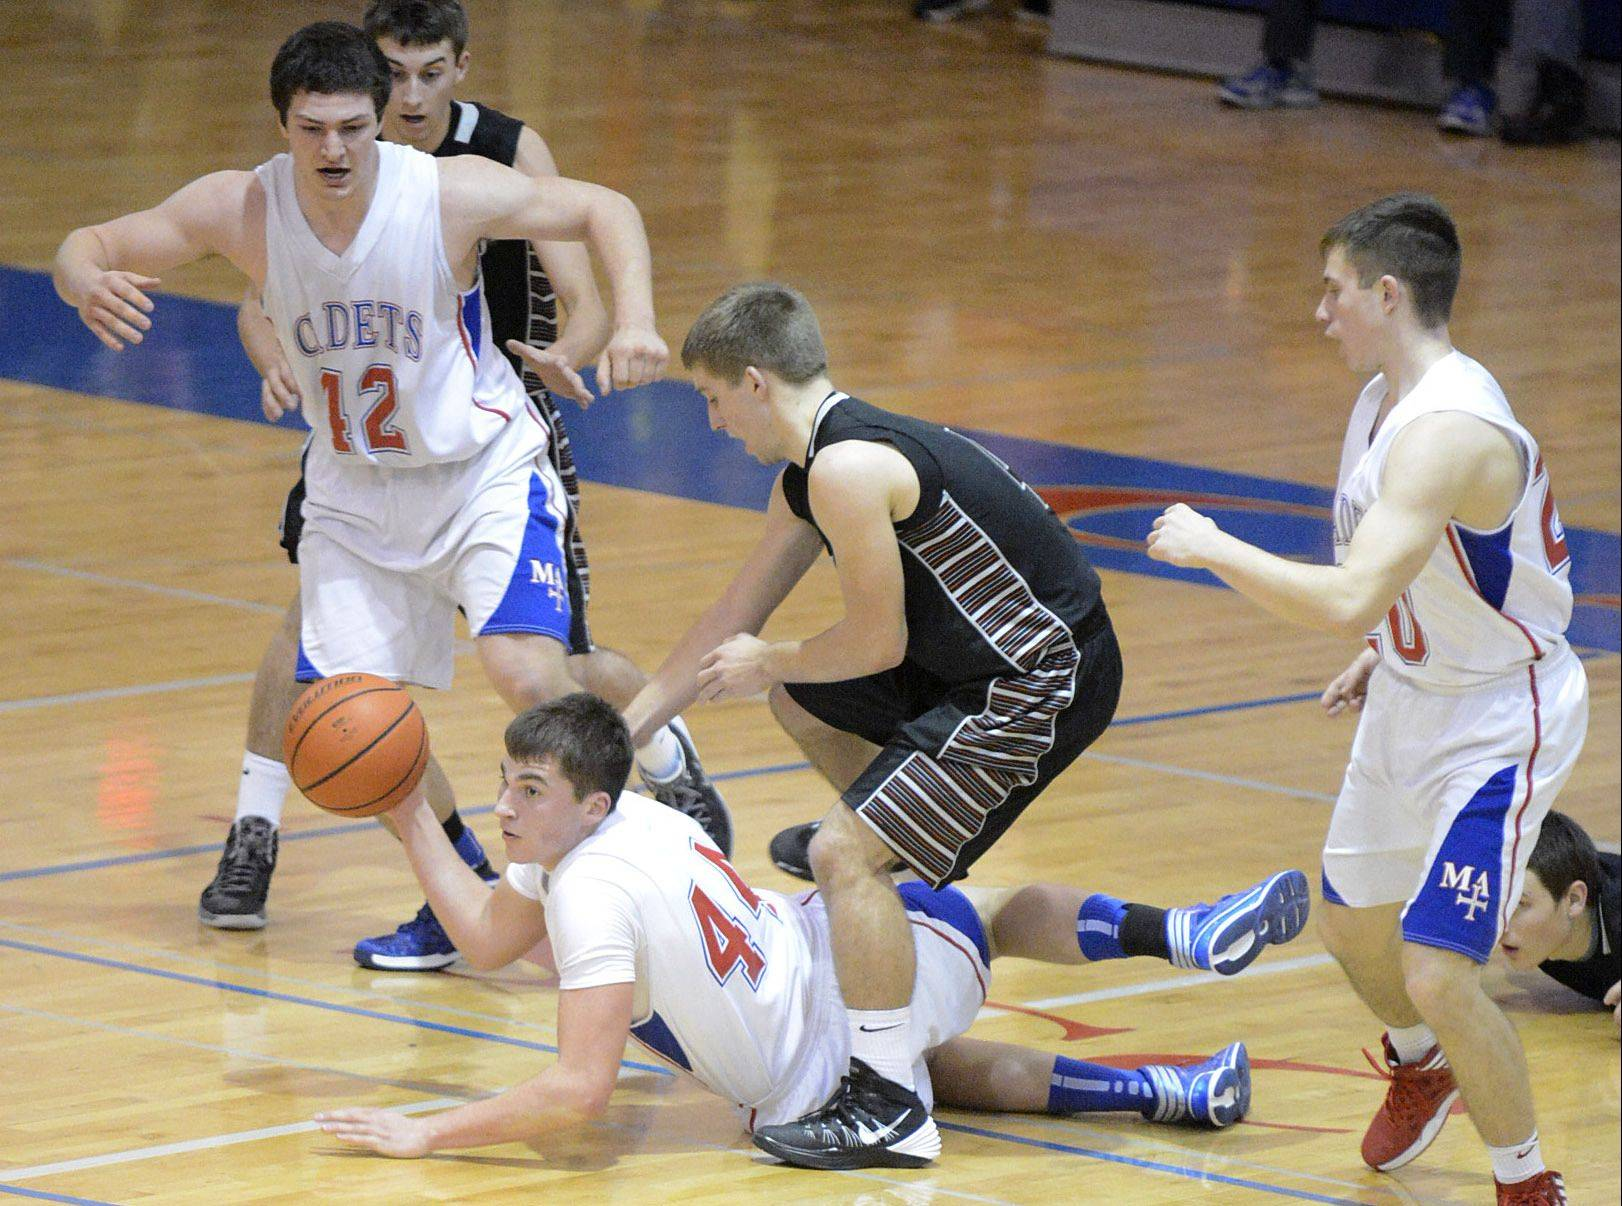 Marmion Academy's Danny Bicknell hustles to pass out of trouble against Drew David and Kaneland on Tuesday.